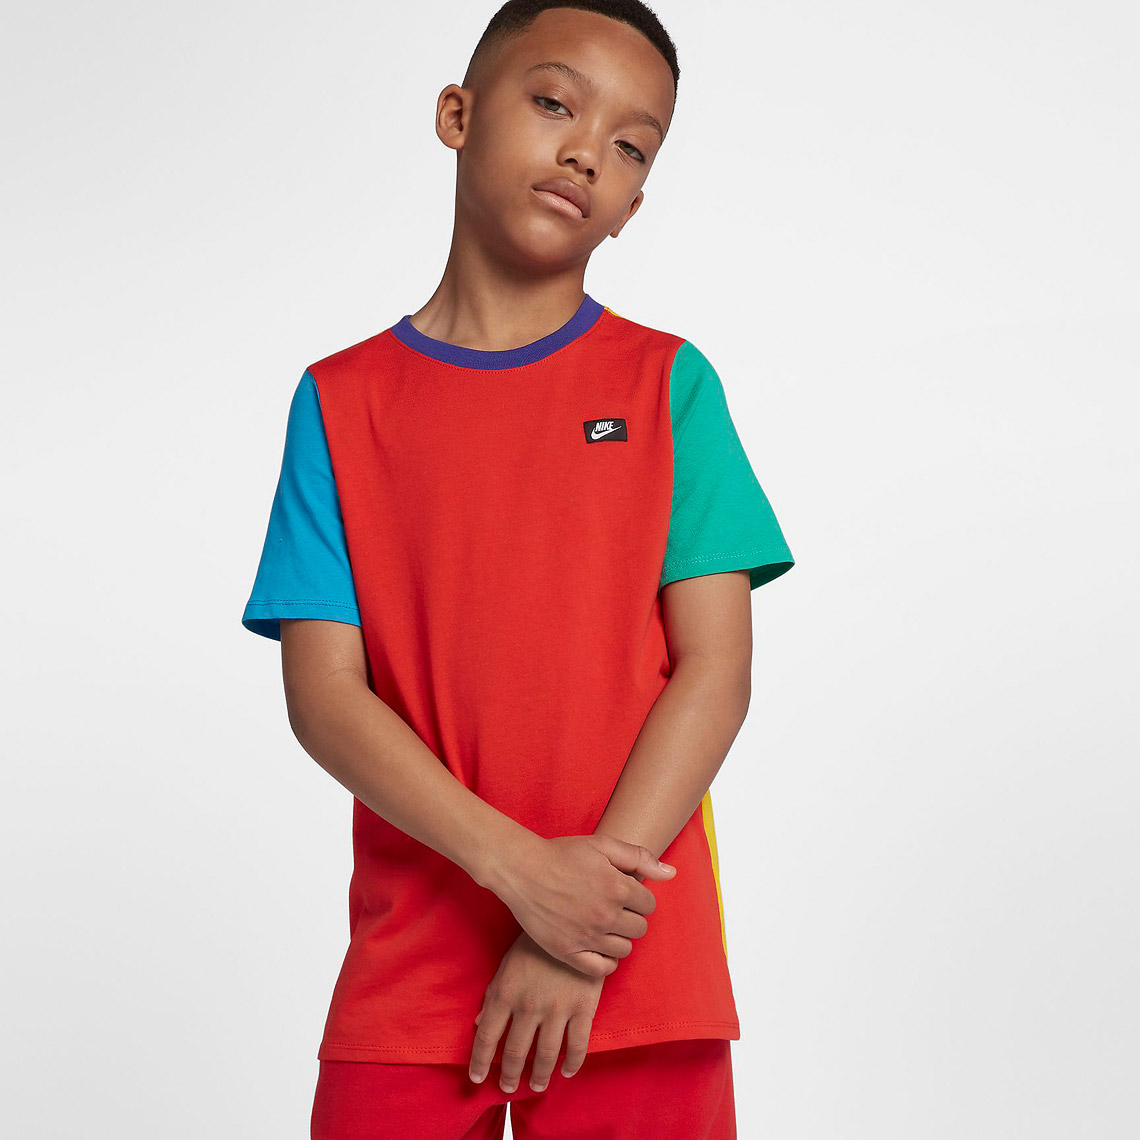 sportswear-color-block-90s-big-kids-boys-t-shirt-lloxZr